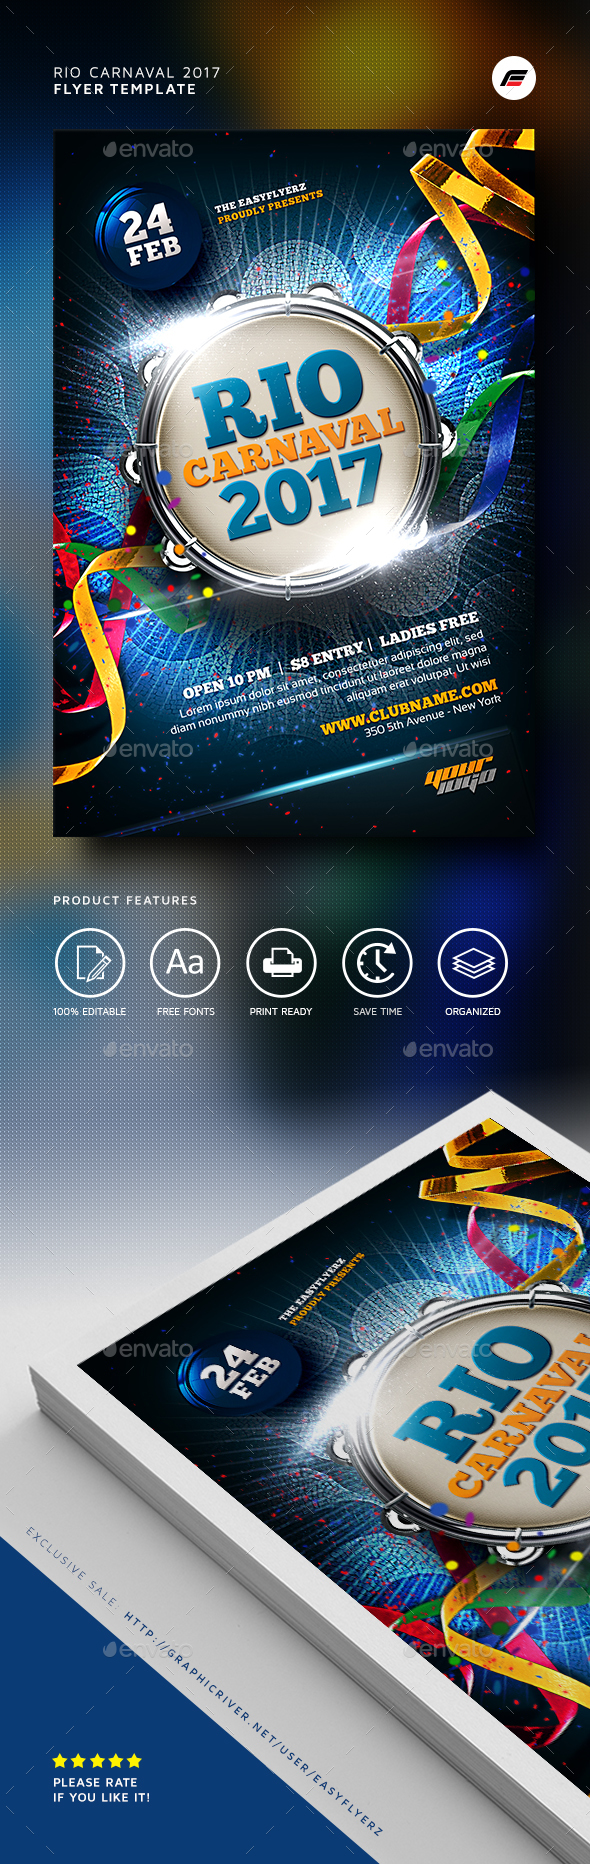 Carnaval 2017 Flyer Template - Events Flyers